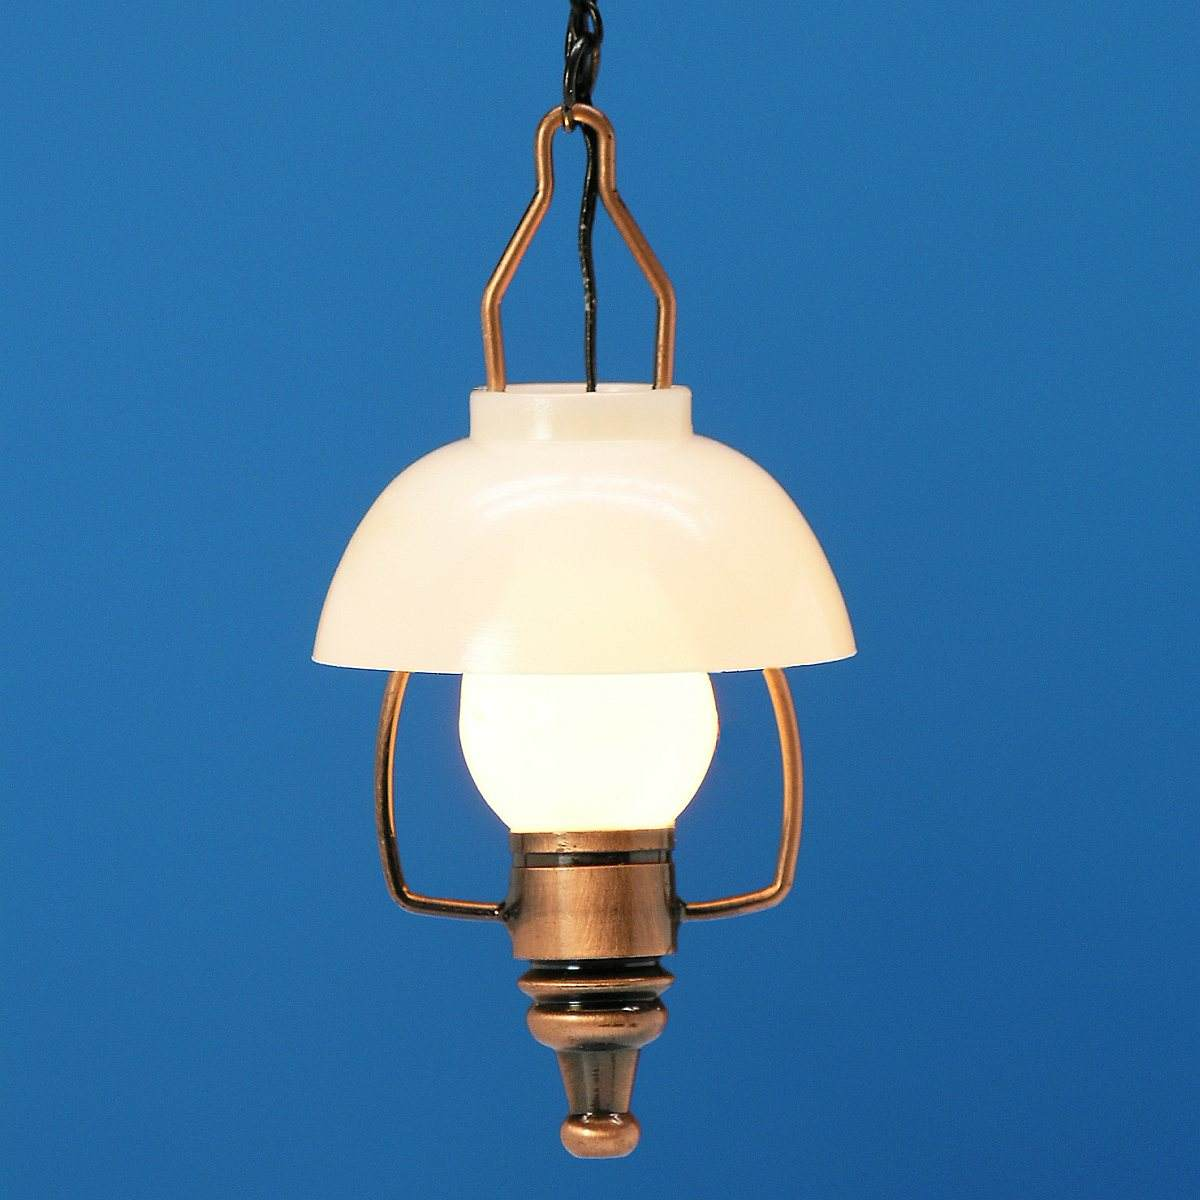 Hanging kitchen lamp, MiniLux